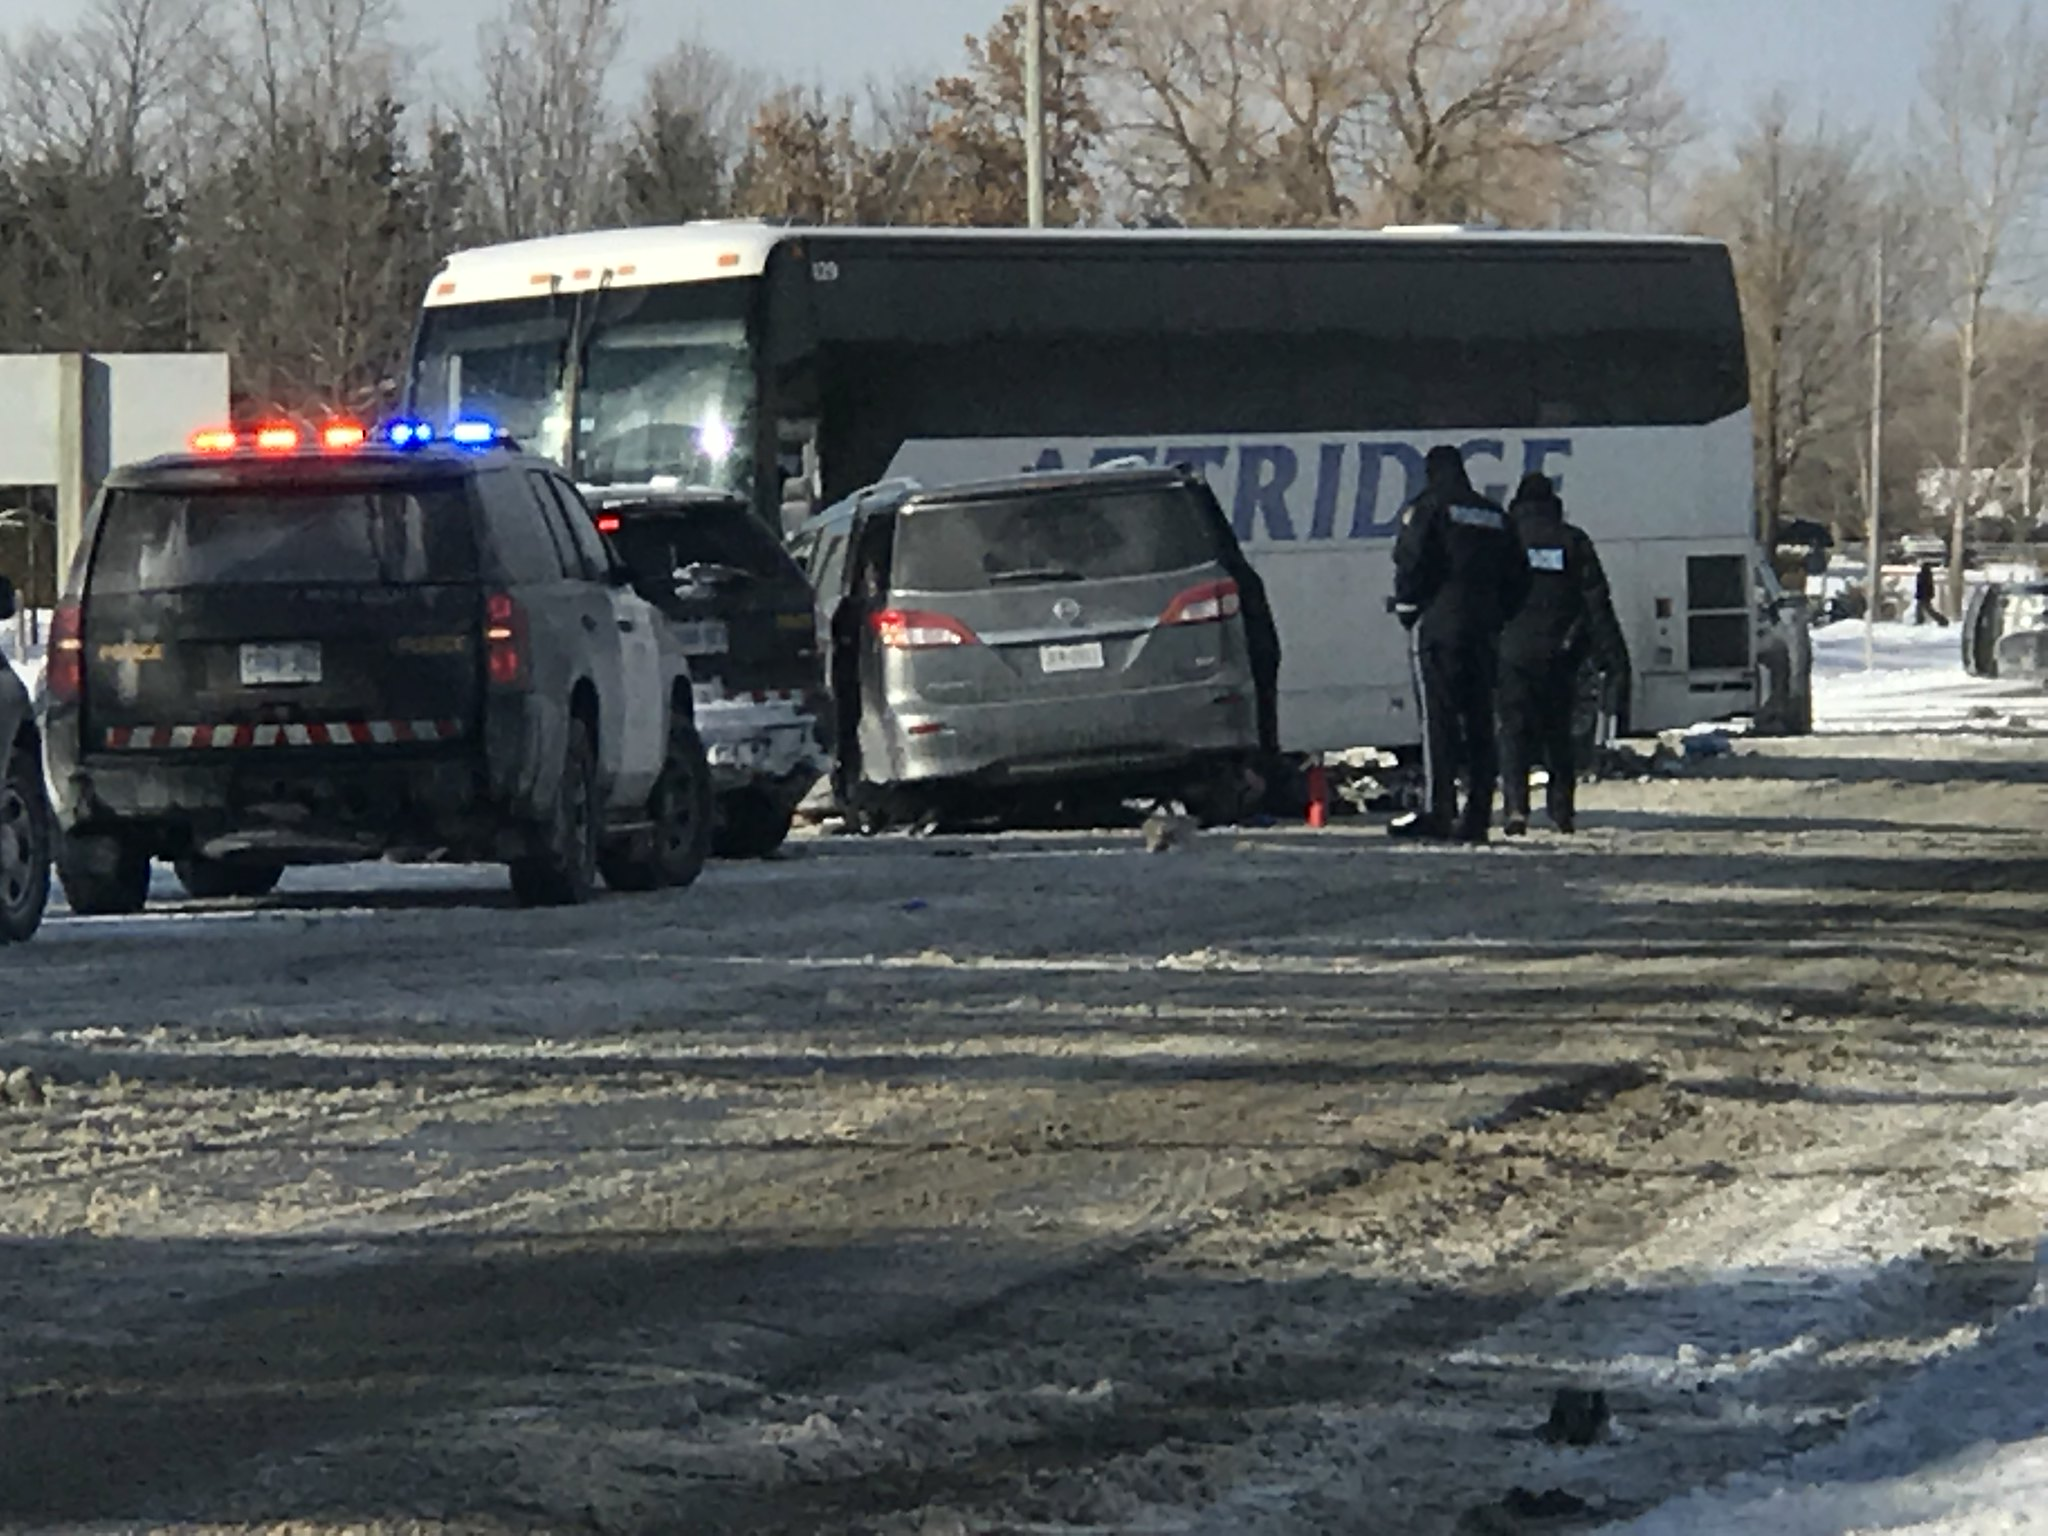 6 children, 2 adults in hospital after van collides with bus